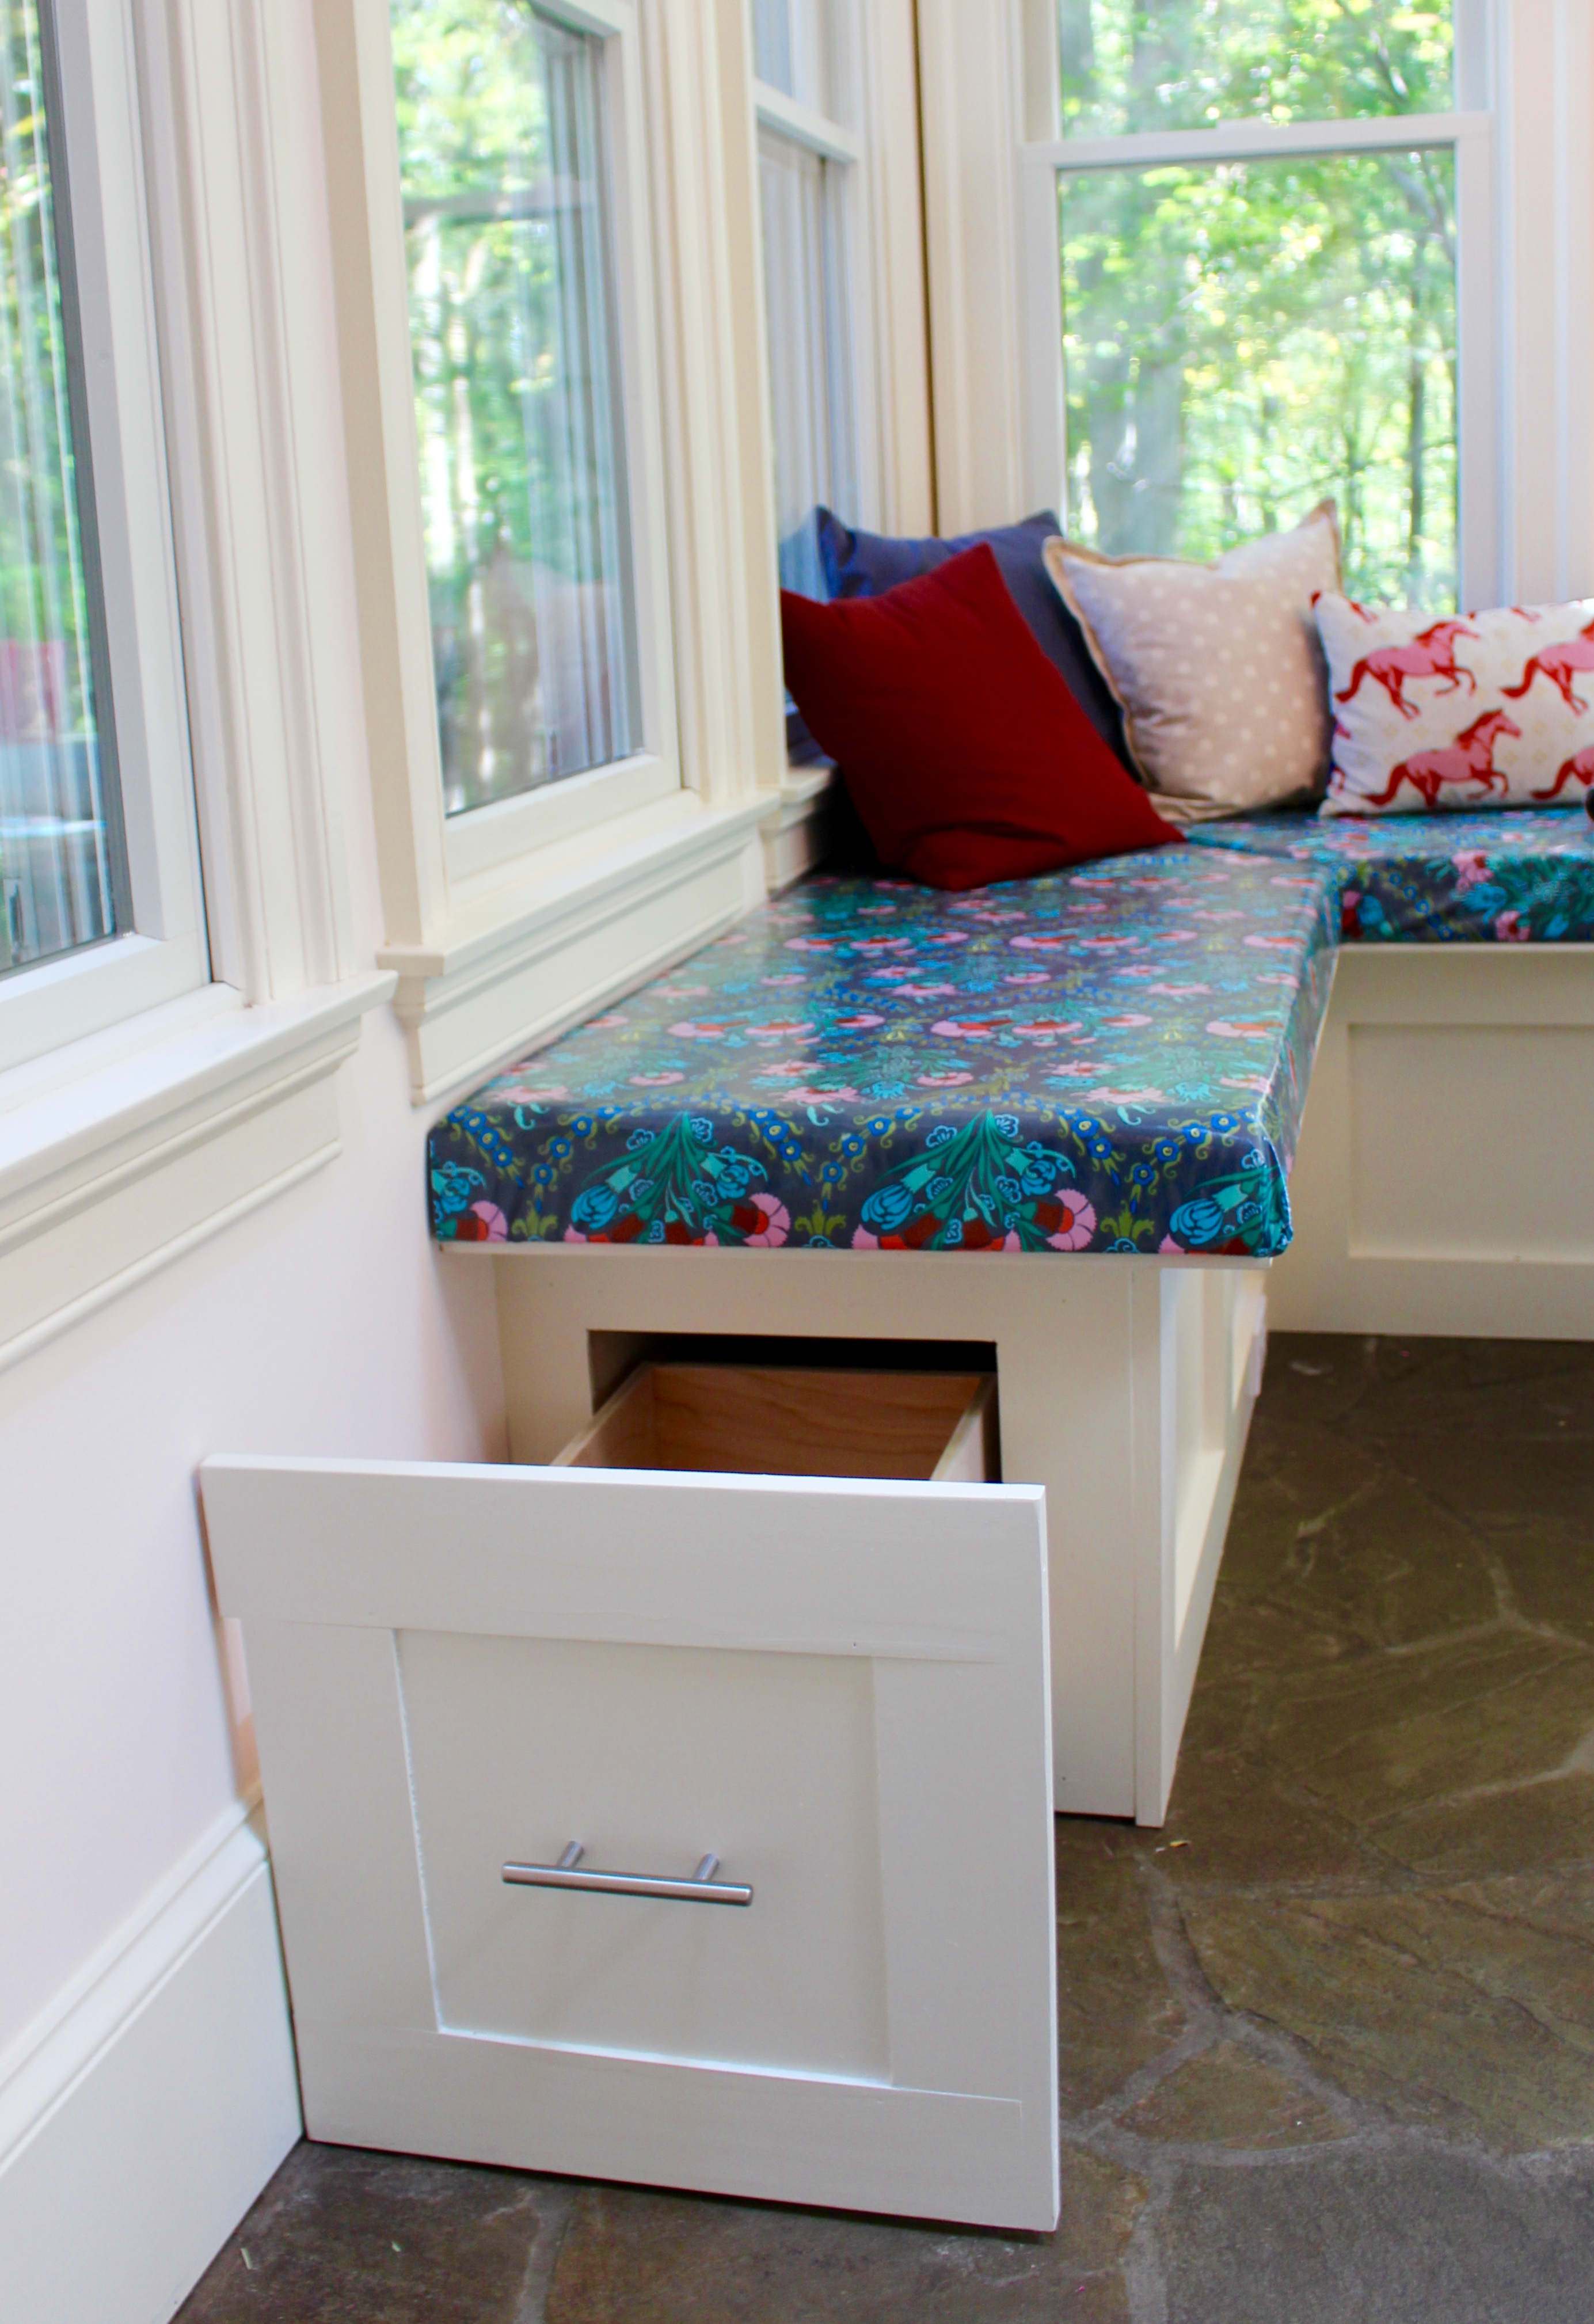 My good nook diy built in kitchen banquette bench - Kitchen bench diy ...